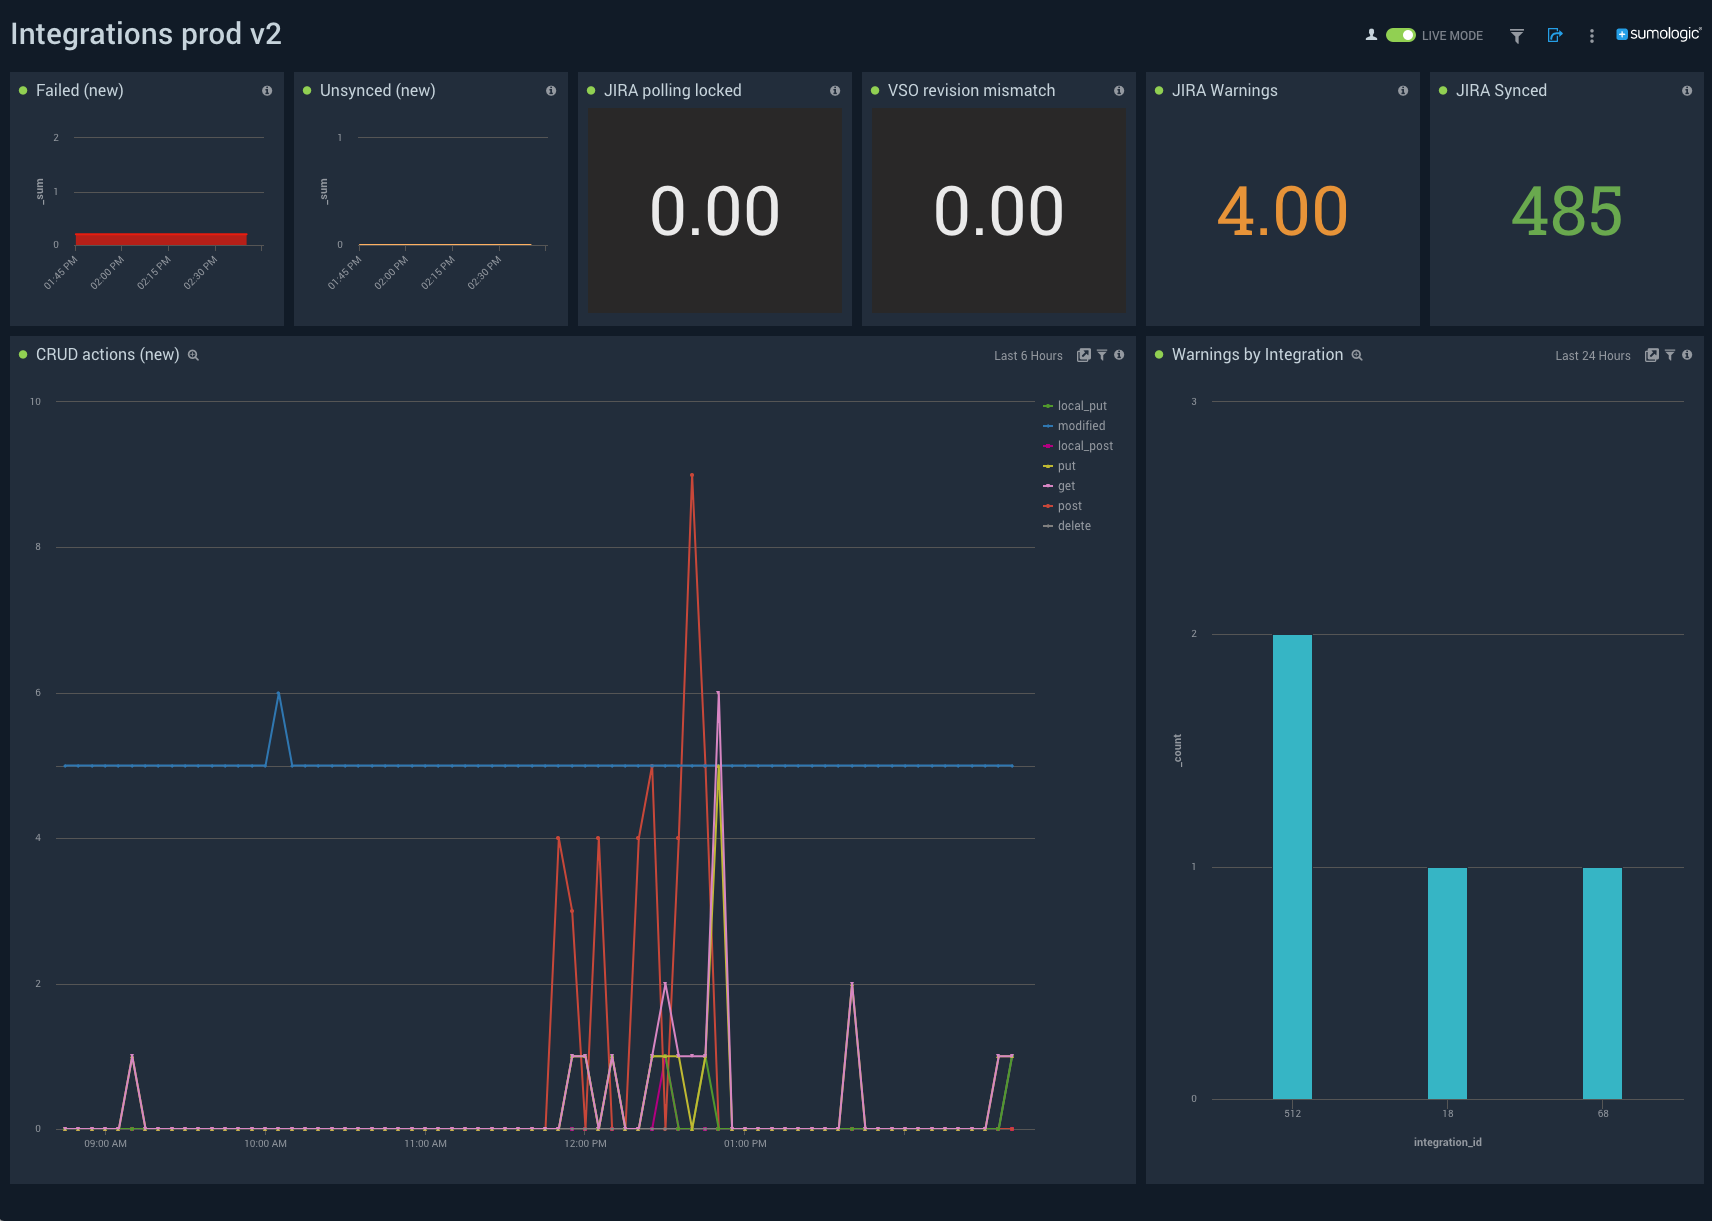 Custom dashboard for monitoring integrations